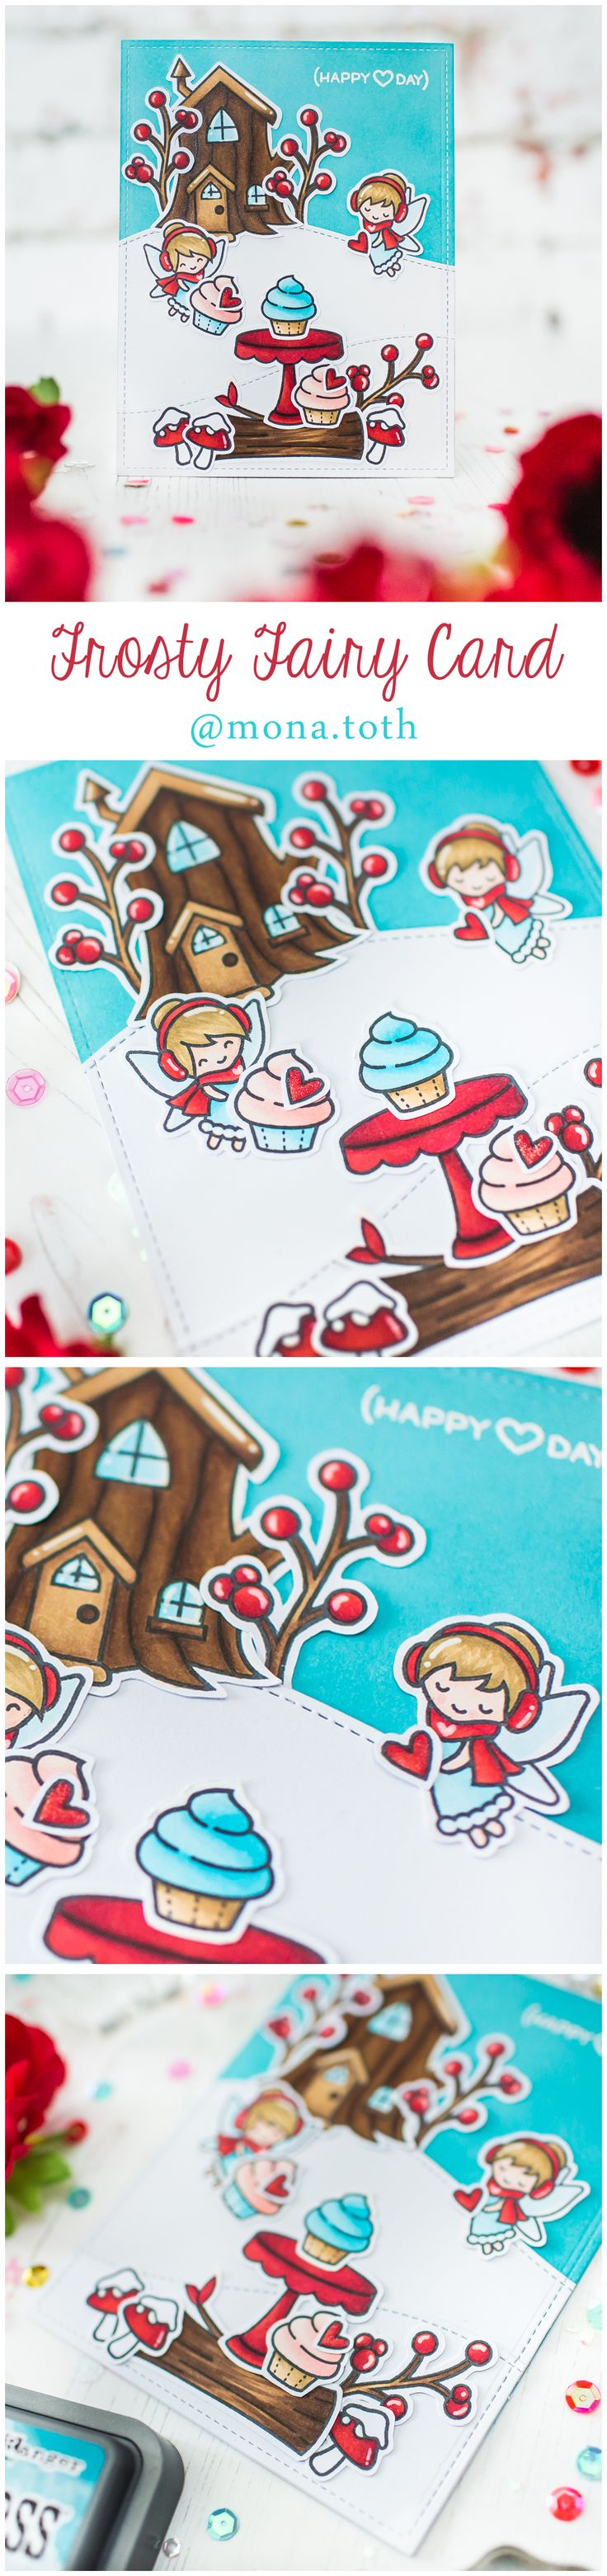 Lawn Fawn Frosty Fairy Friends Baked with Love Card by Mona Toth |